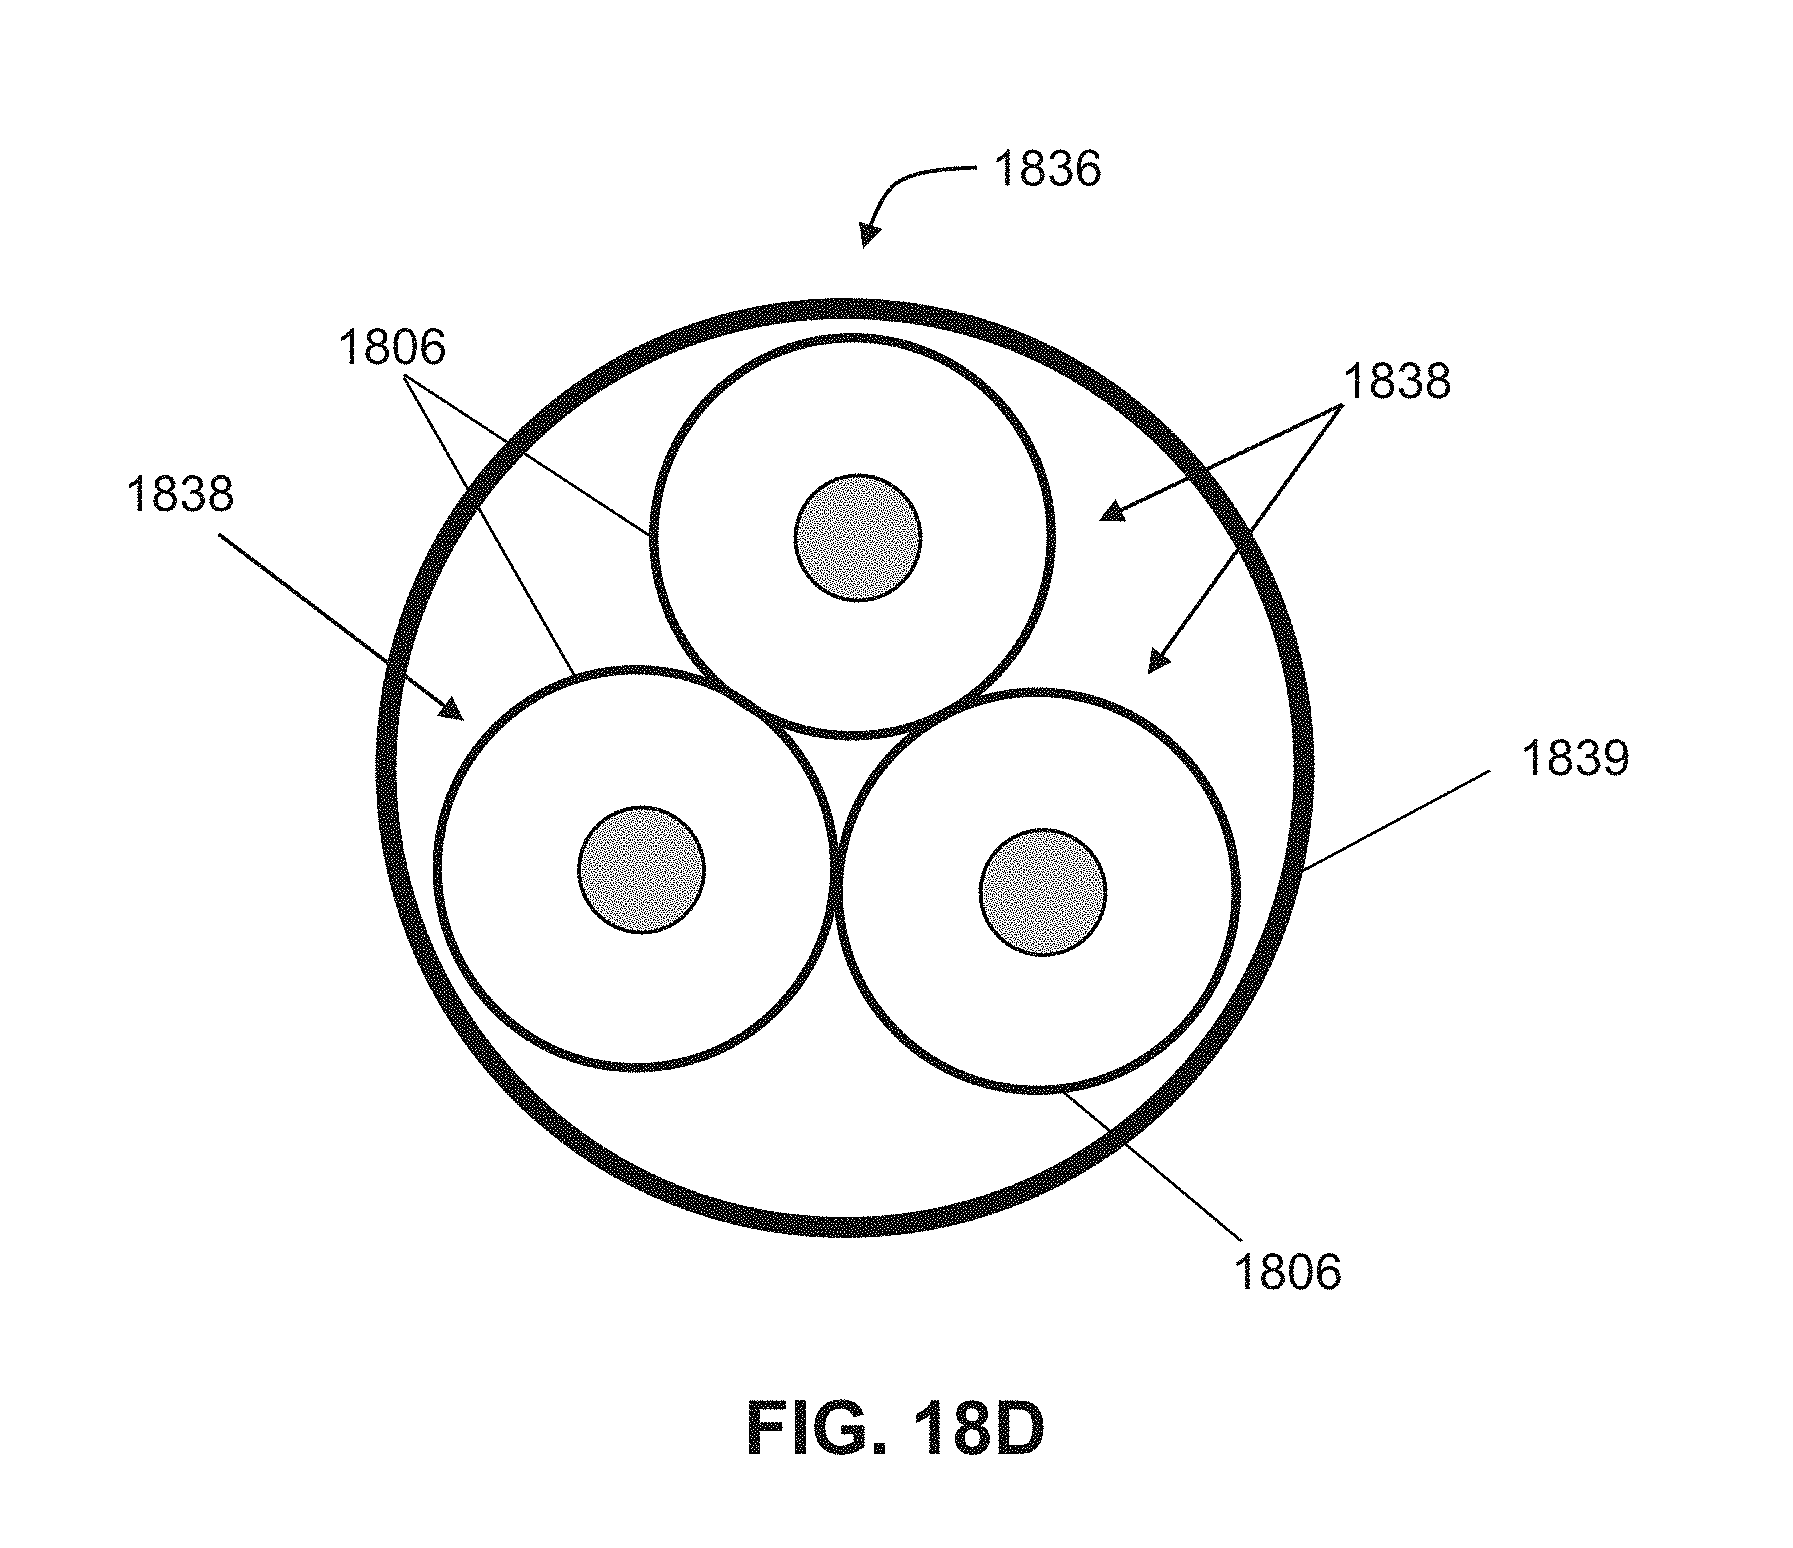 us9947982b2 dielectric transmission medium connector and methods Xfinity Stream us9947982b2 dielectric transmission medium connector and methods for use therewith patents